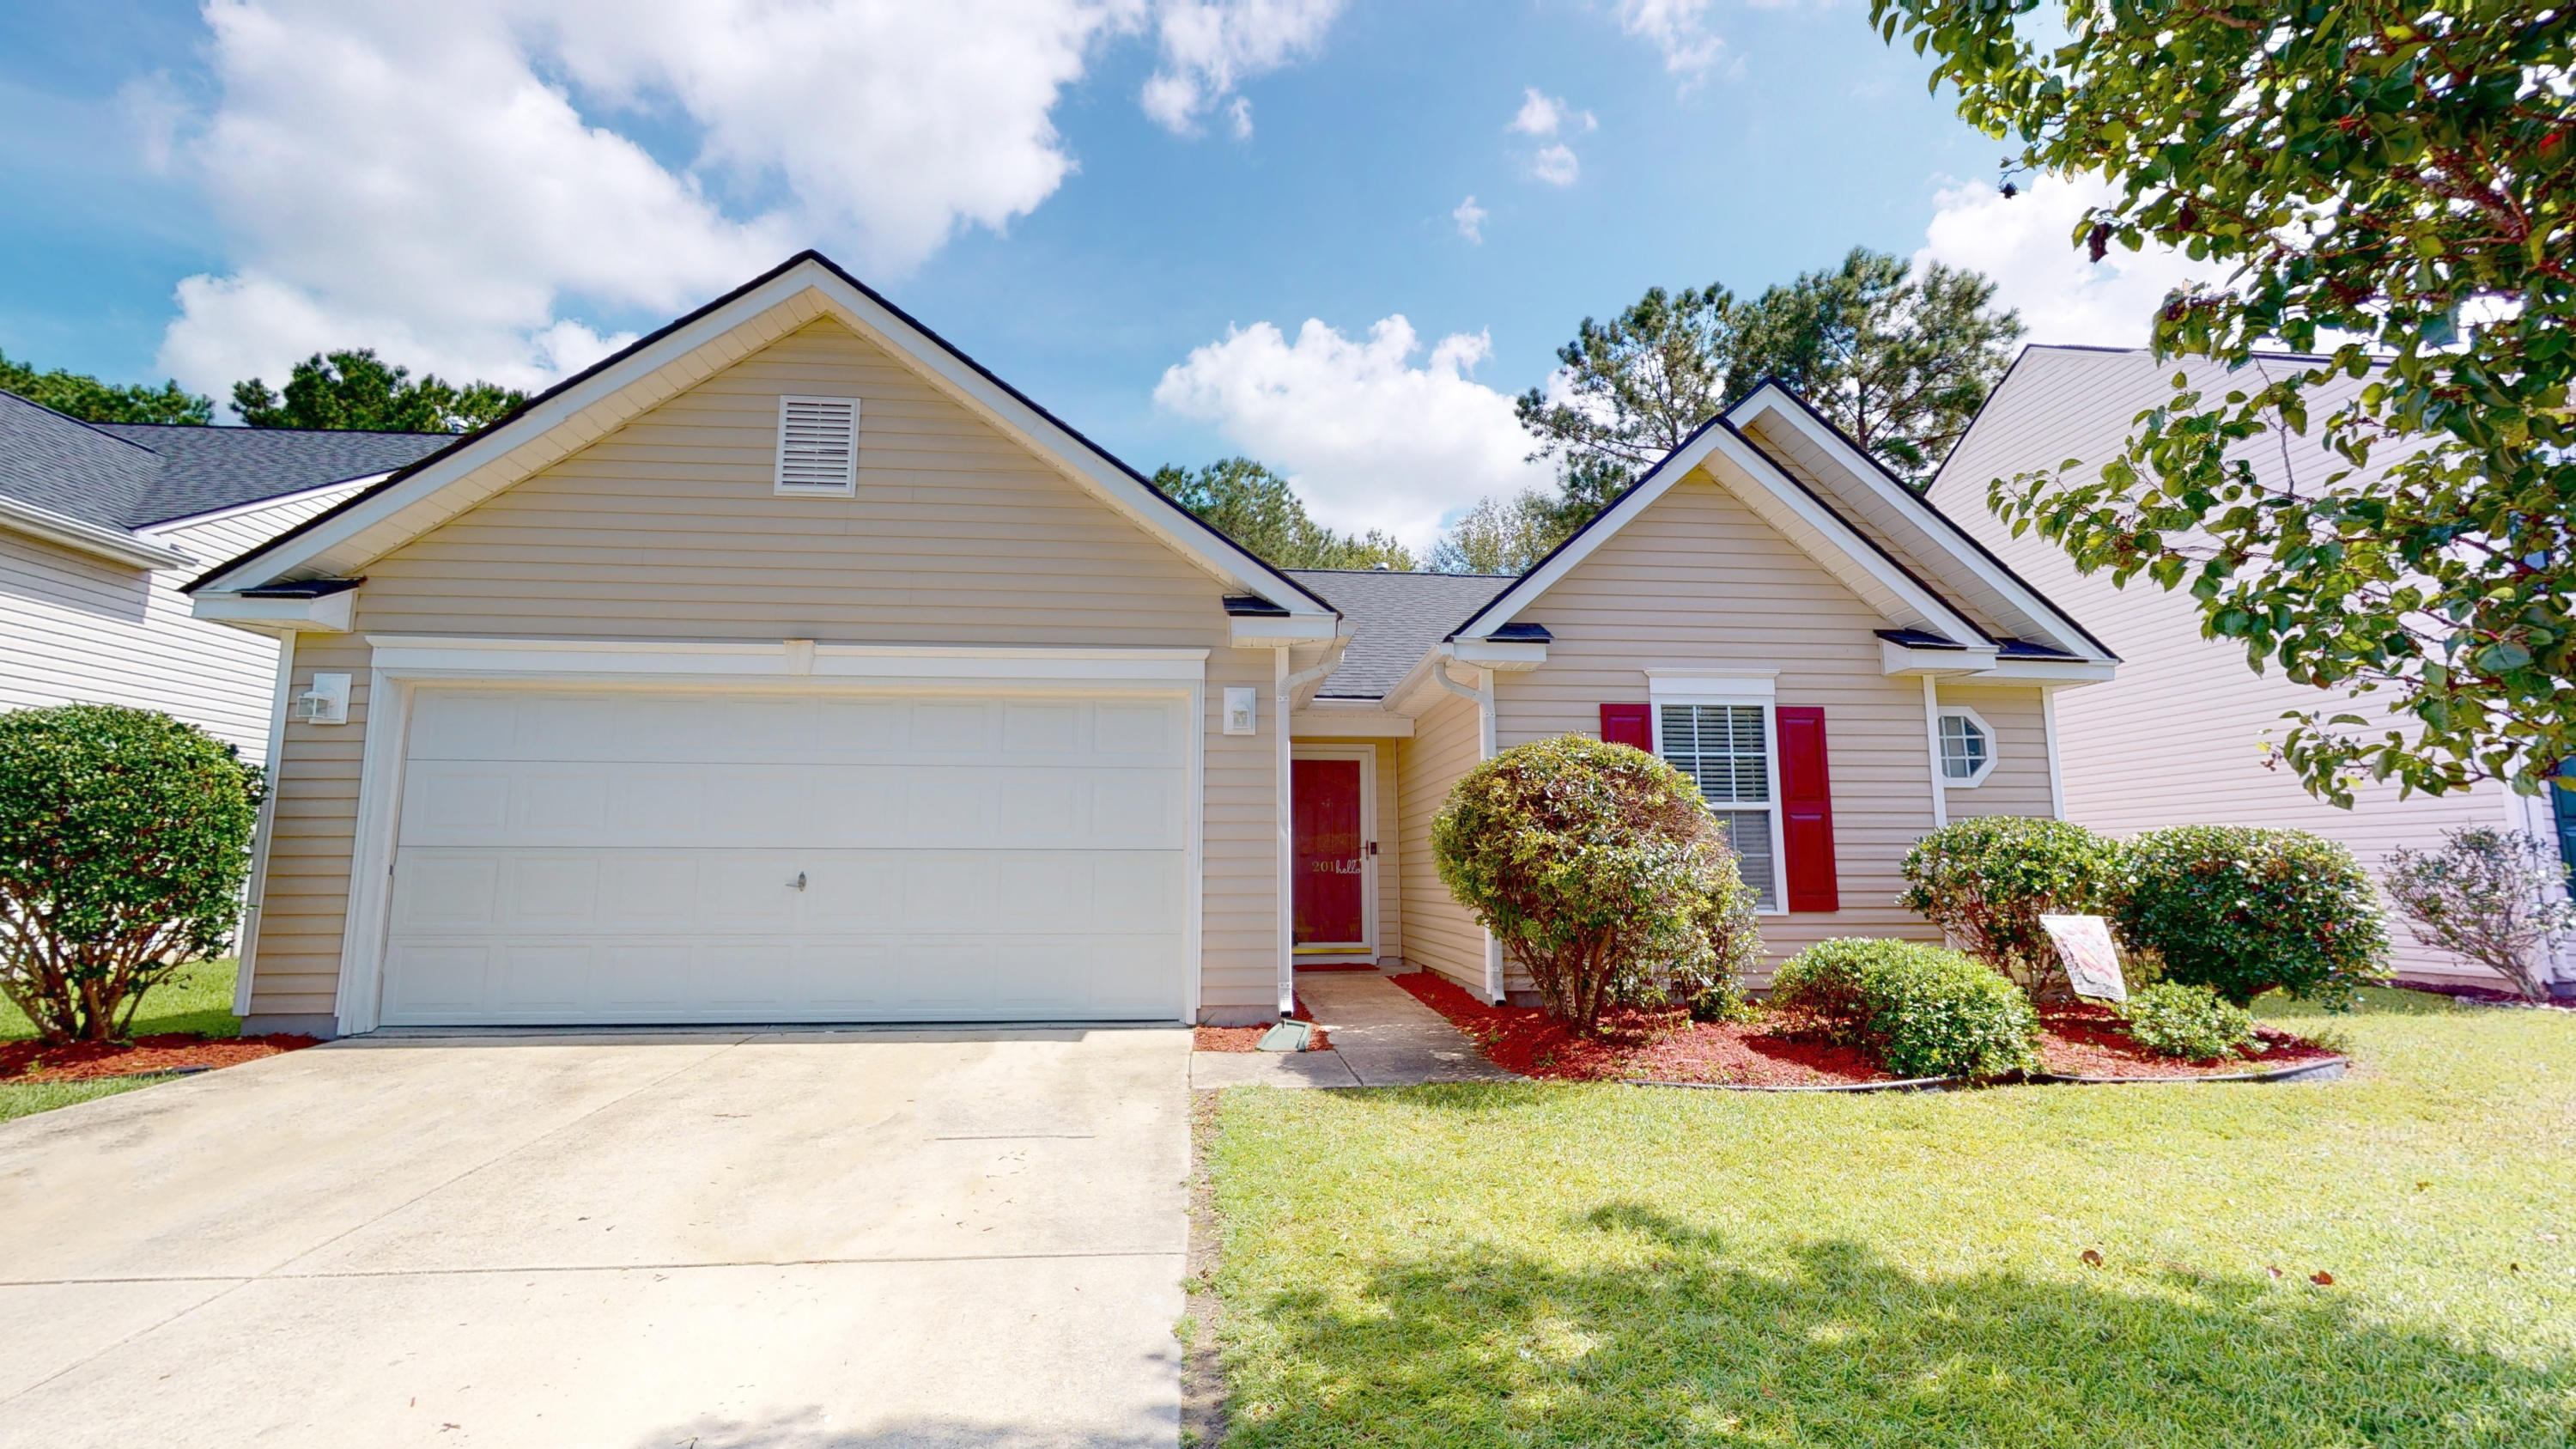 201 Towering Pine Drive Ladson, Sc 29456